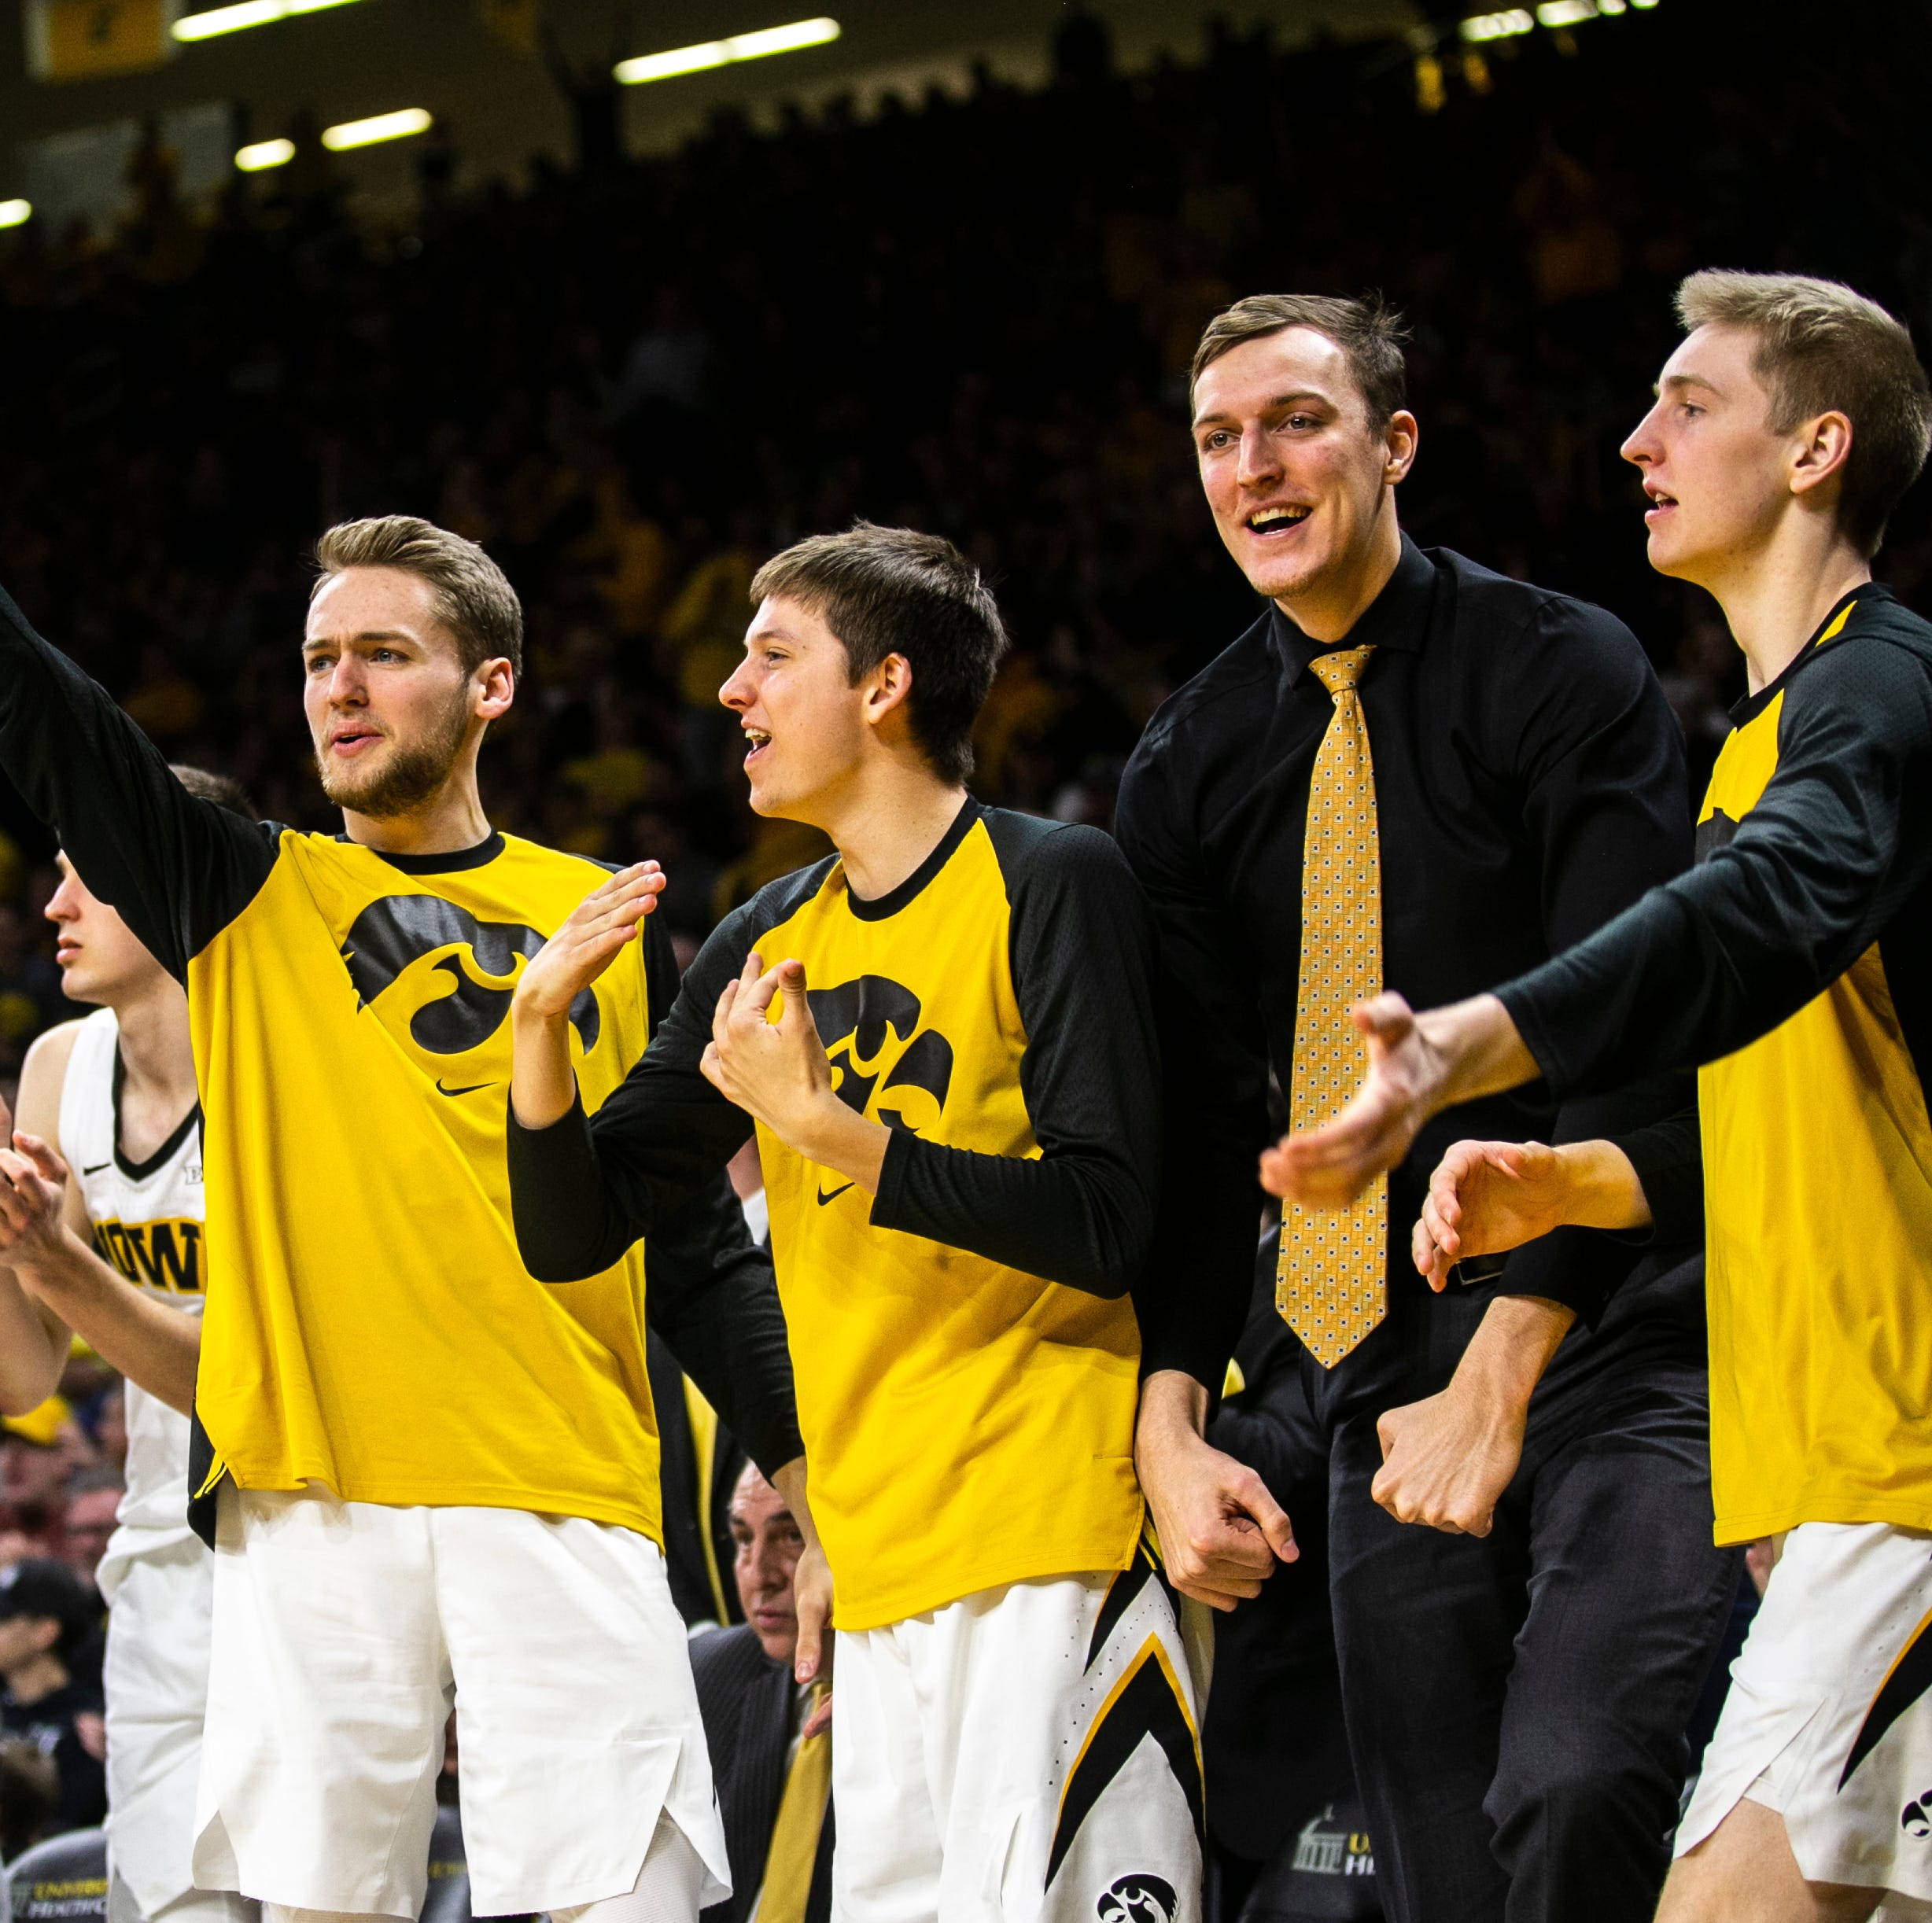 Iowa's Nunge packs on weight while sitting out, eager for bigger impact in final 3 seasons